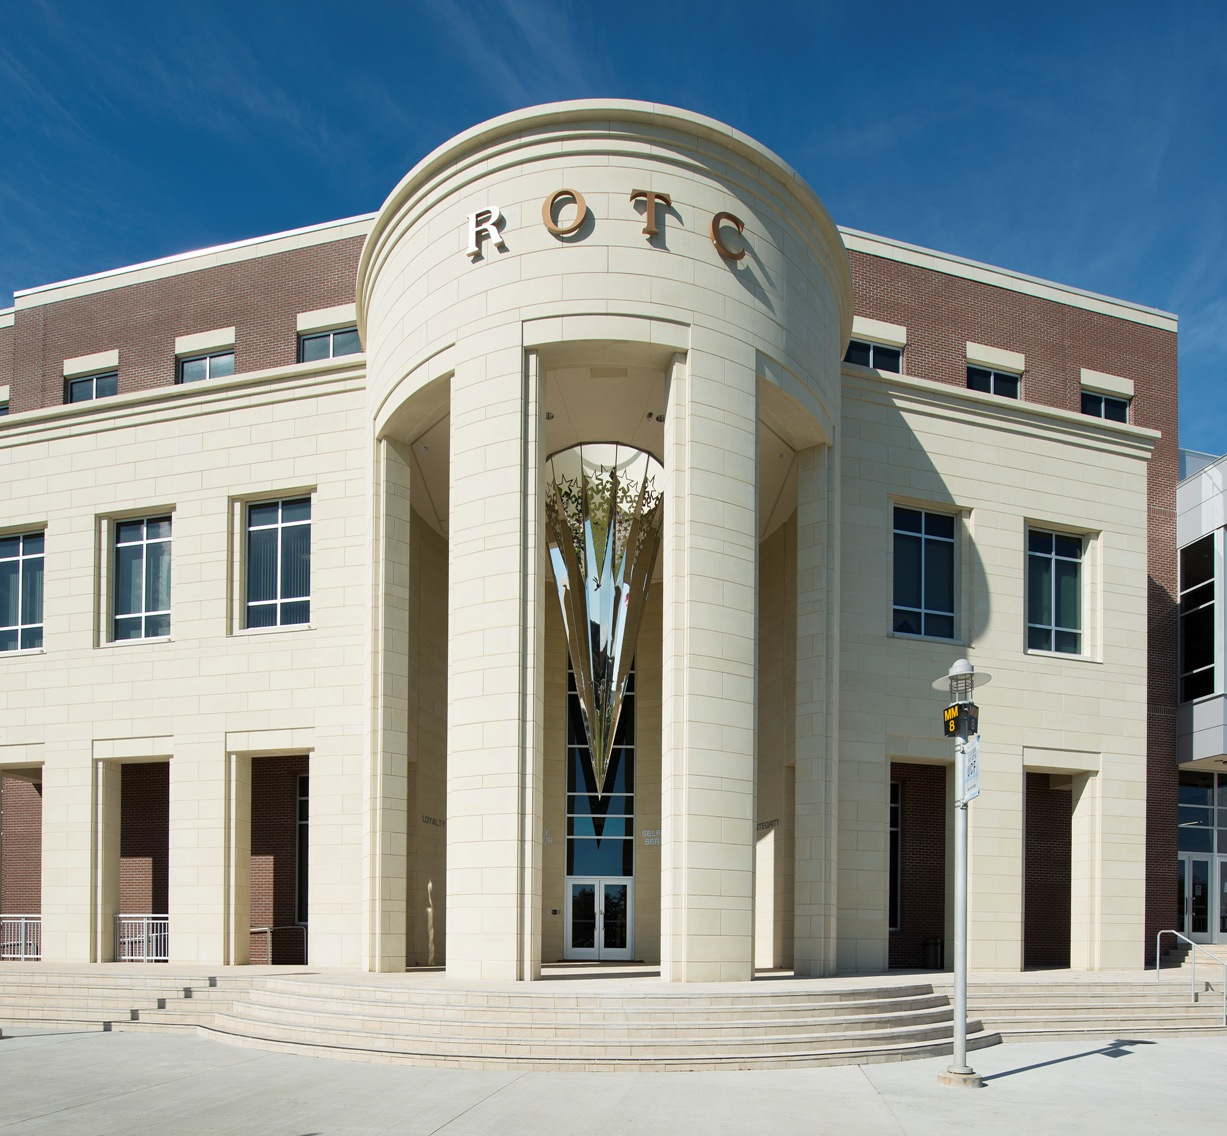 AAS Project : ROTC Classroom at University of Central Florida | Architectural Stone Created Design of 3-Dimensional Frame for the Unique Sculpture